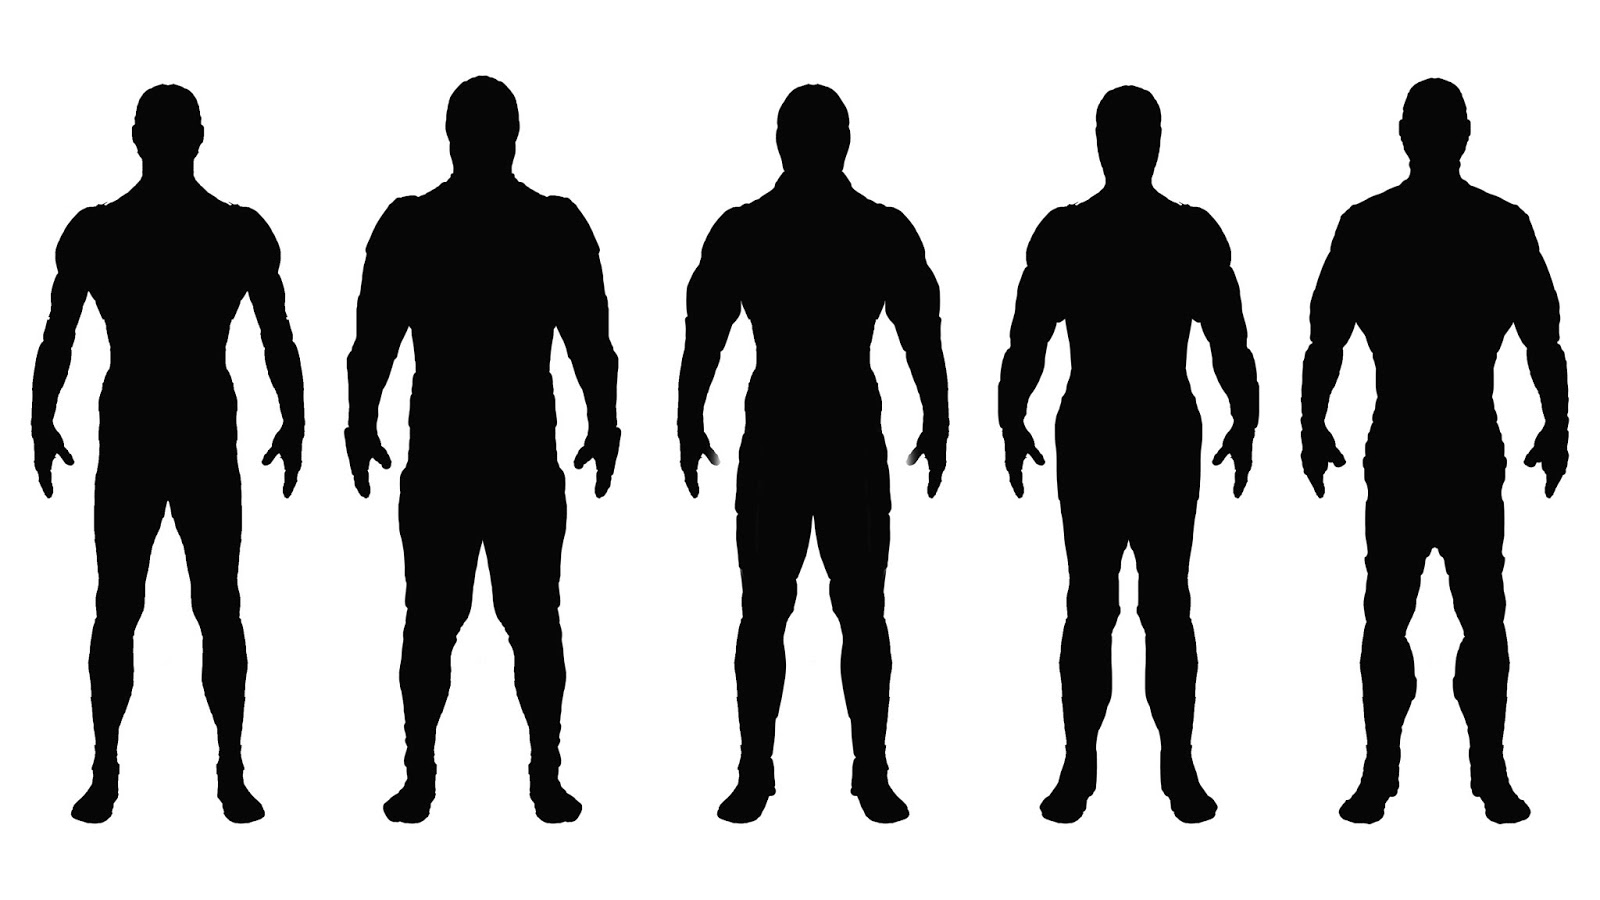 15 Human Body Silhouette   Free Cliparts That You Can Download To You